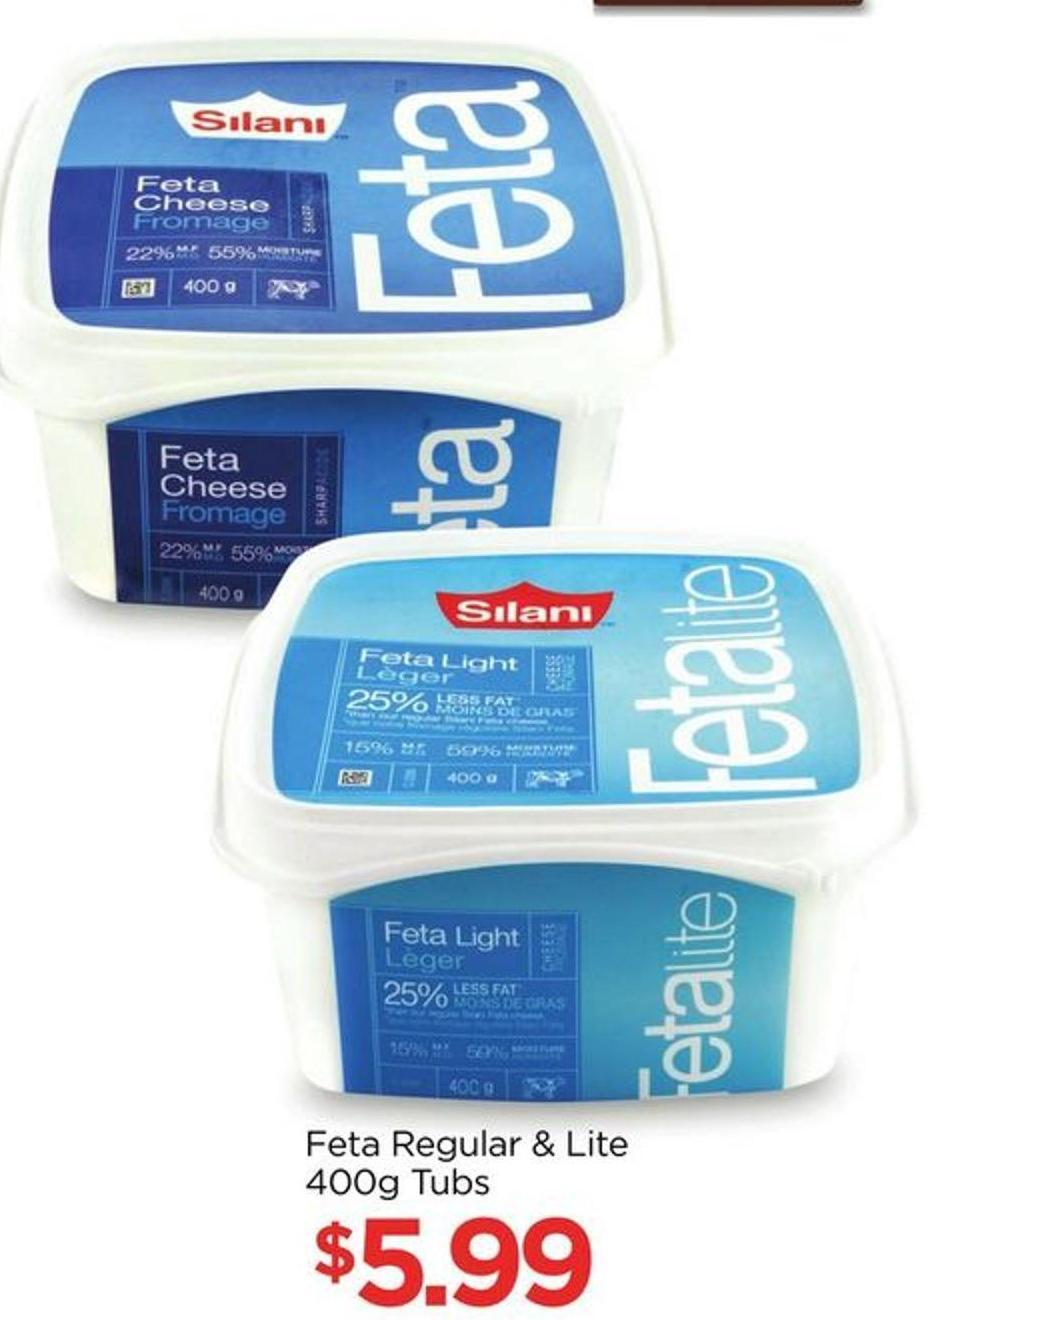 Feta Regular & Lite 400g Tubs